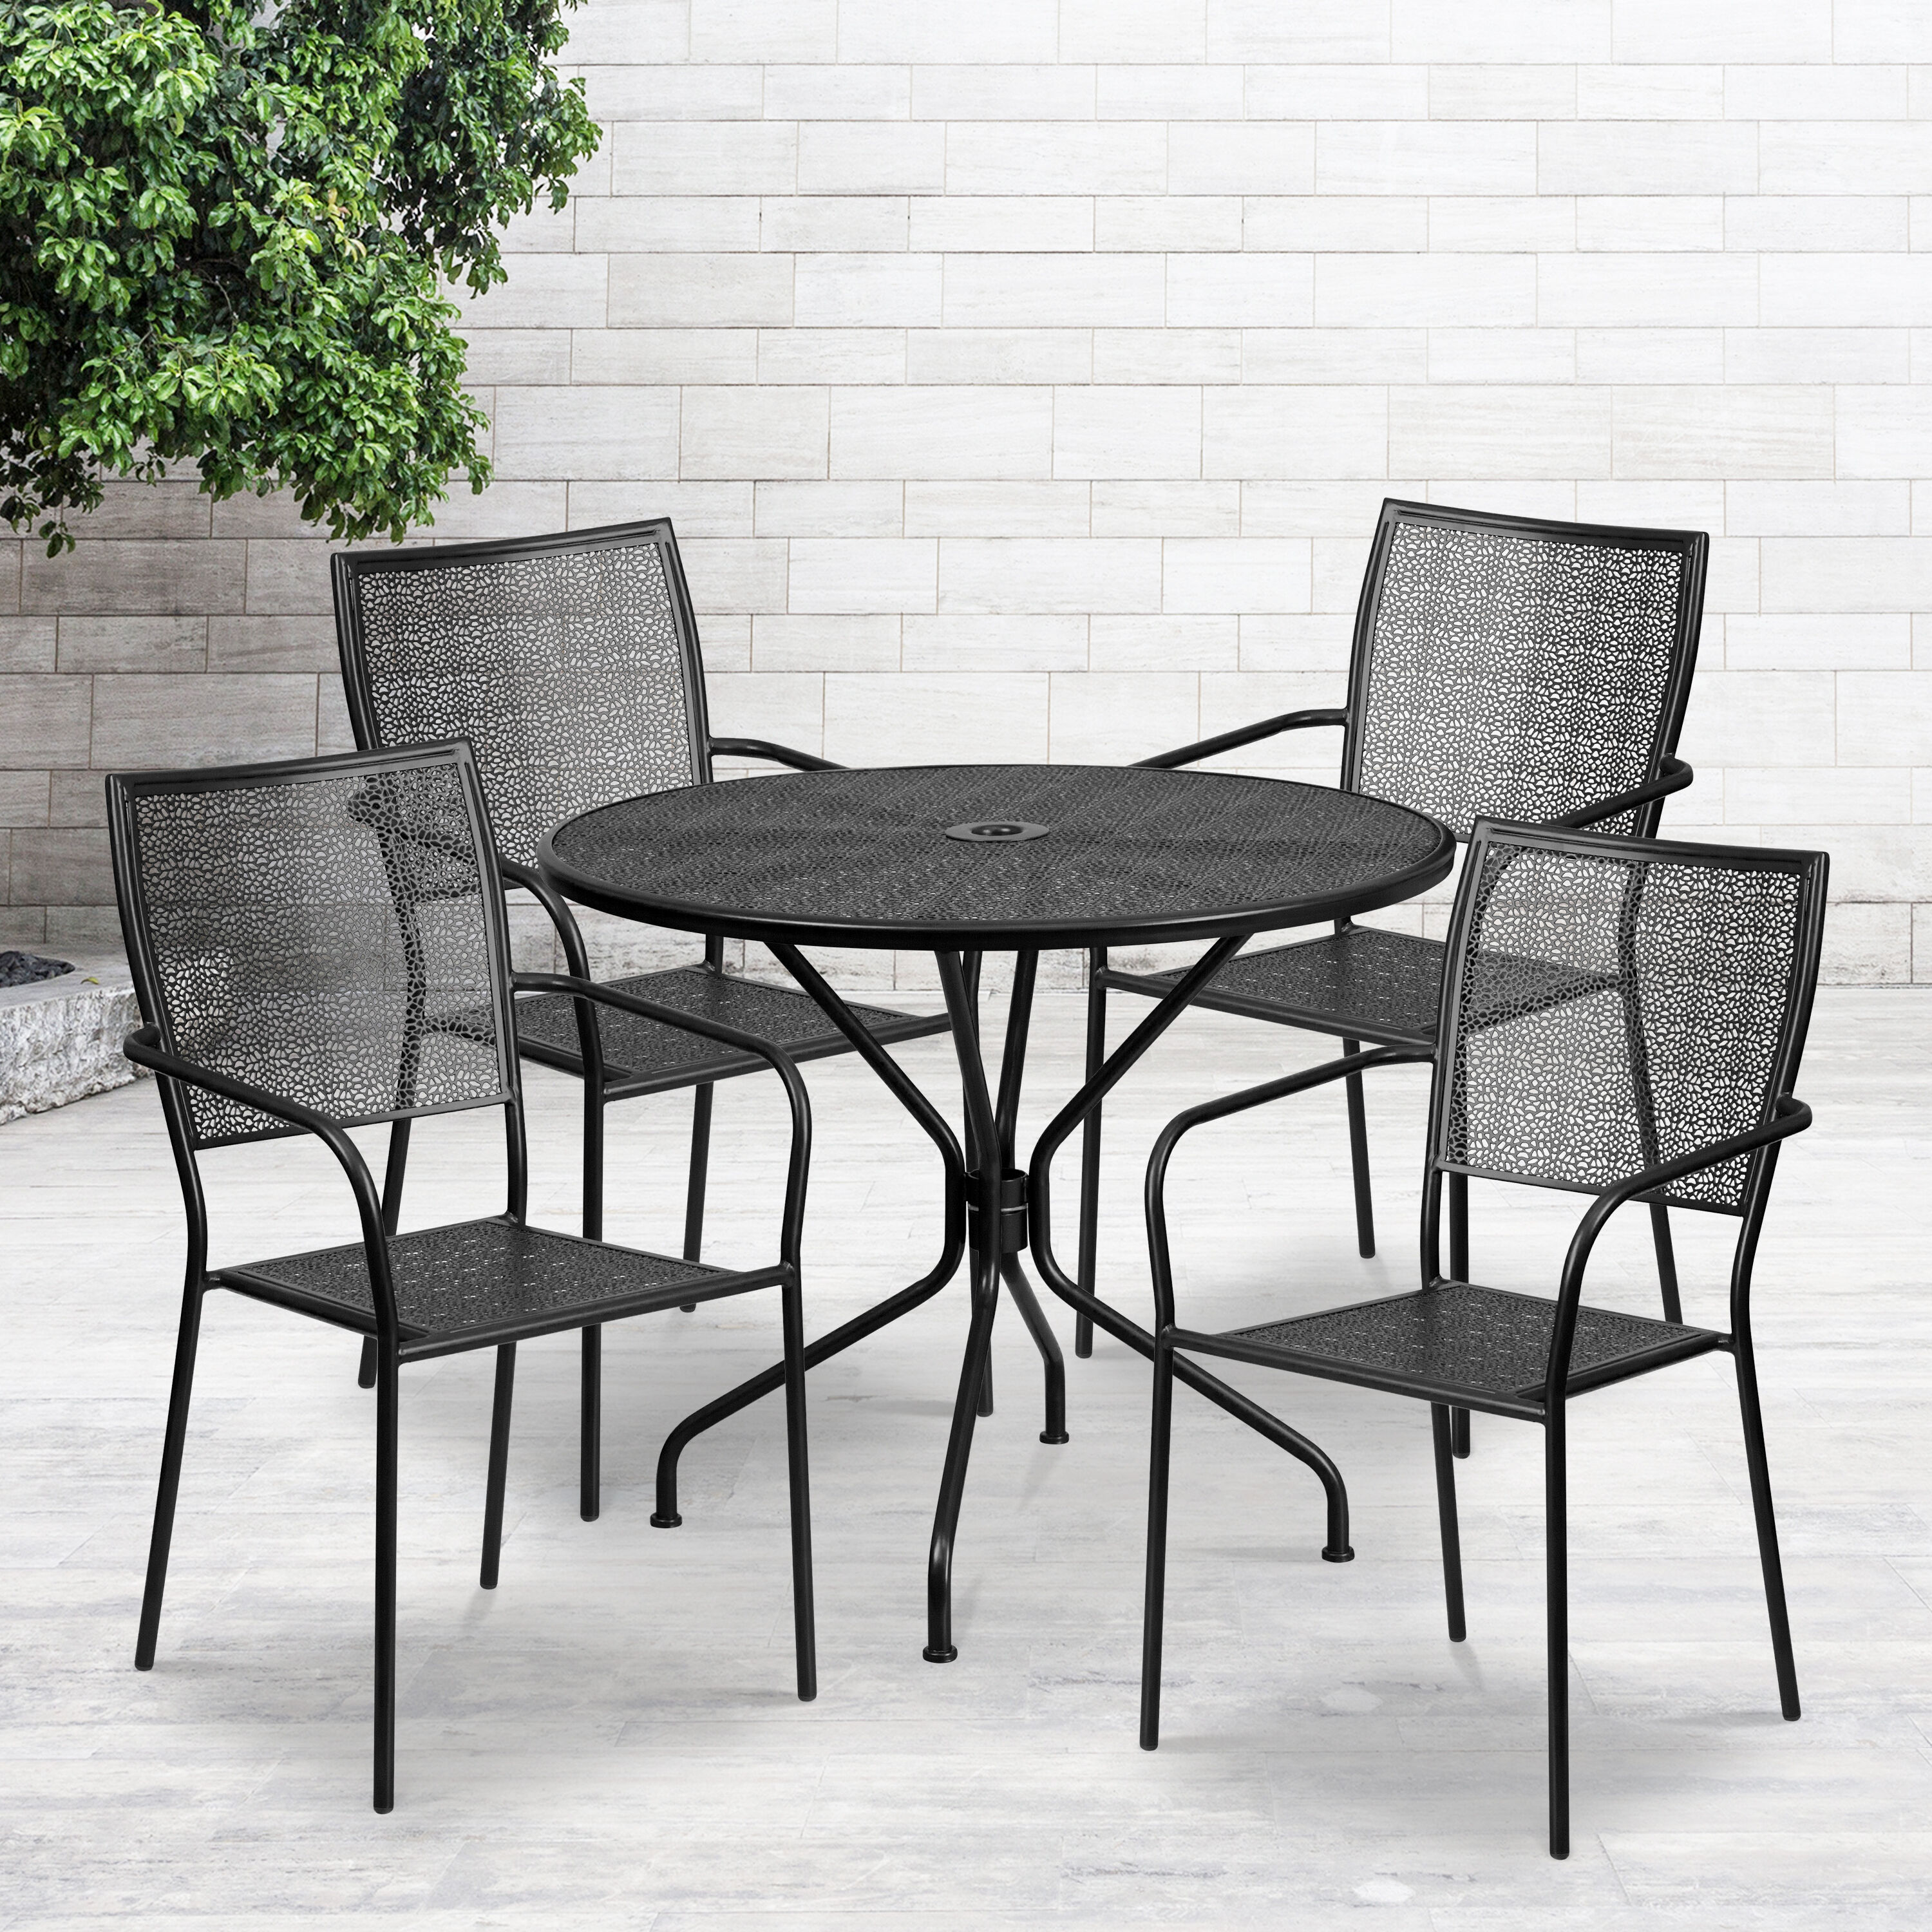 commercial grade 35 25 round black indoor outdoor steel patio table set with 4 square back chairs